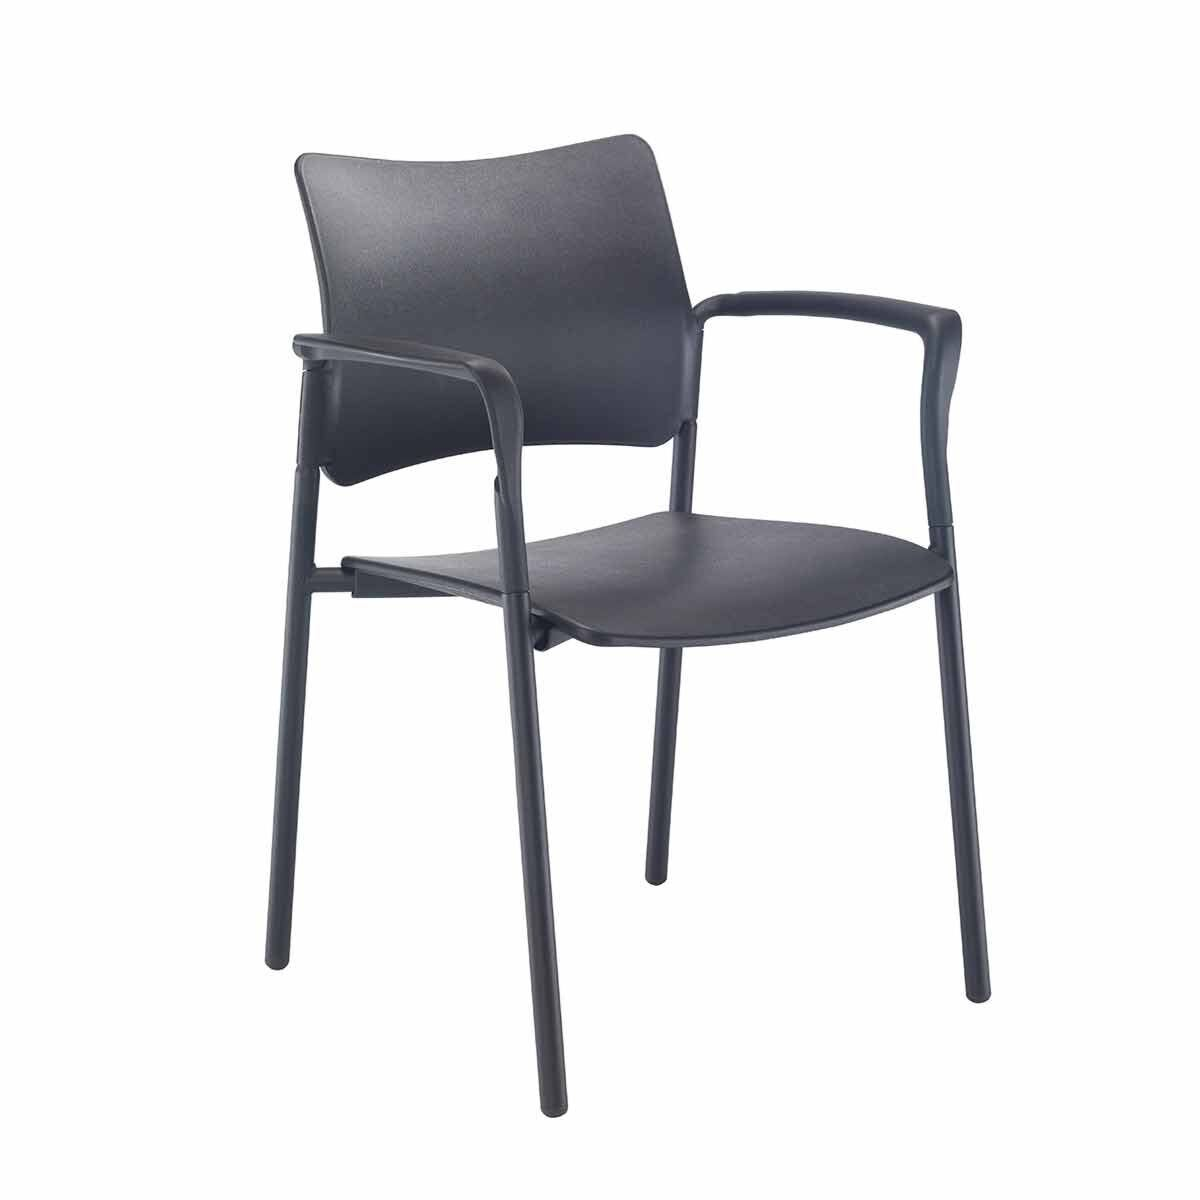 TC Office Florence Plastic Arm Chair with Black Frame